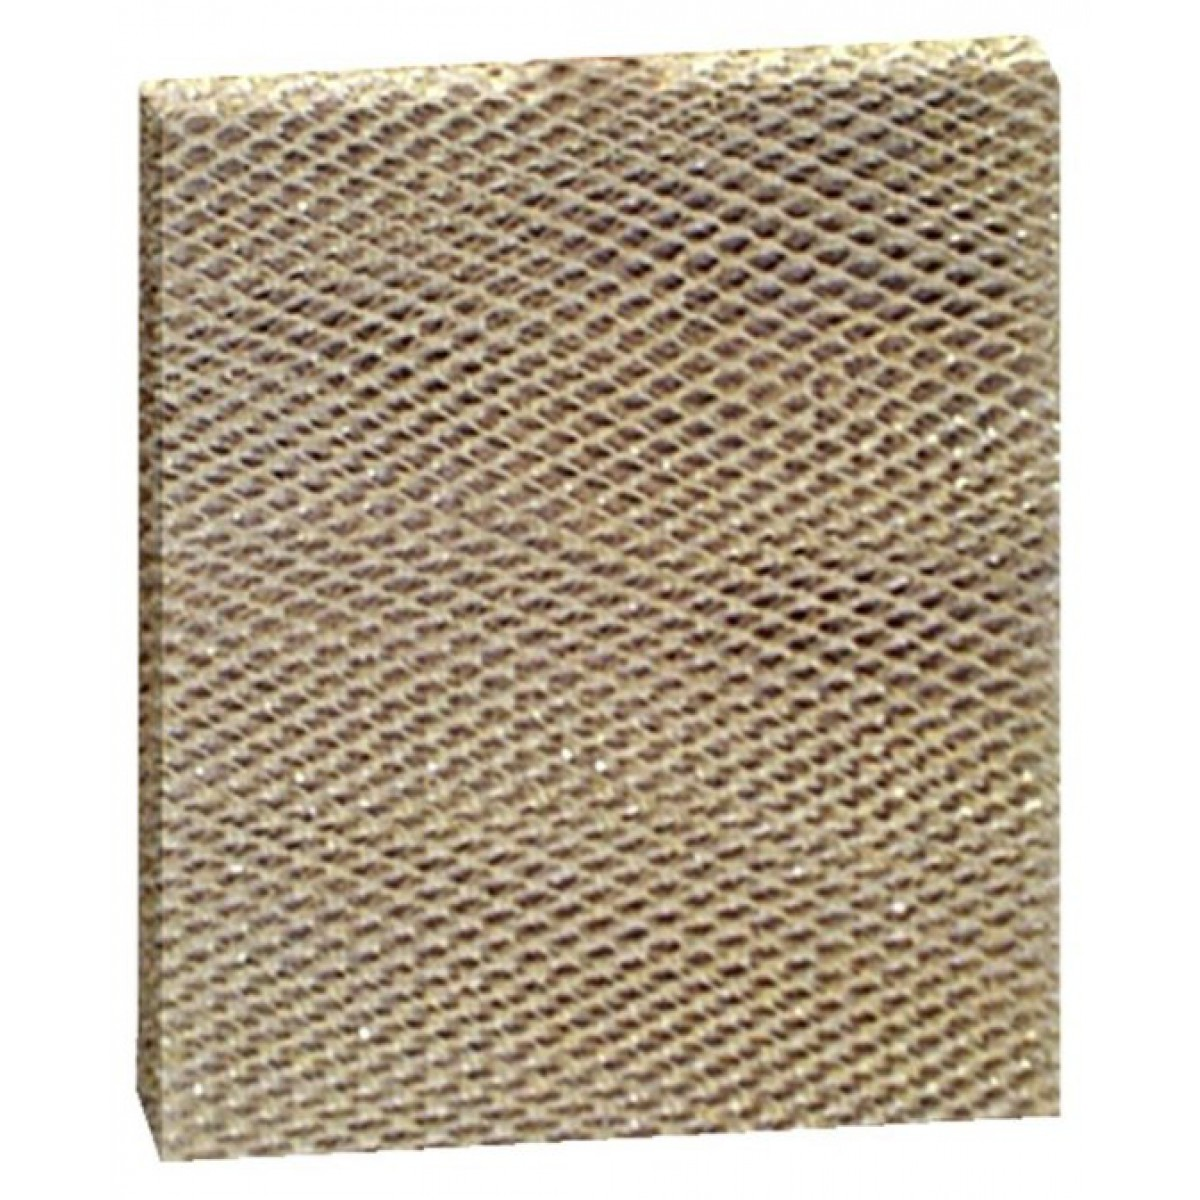 White Rodgers Hft2900fp Humidifier Filter Replacement By Tier1